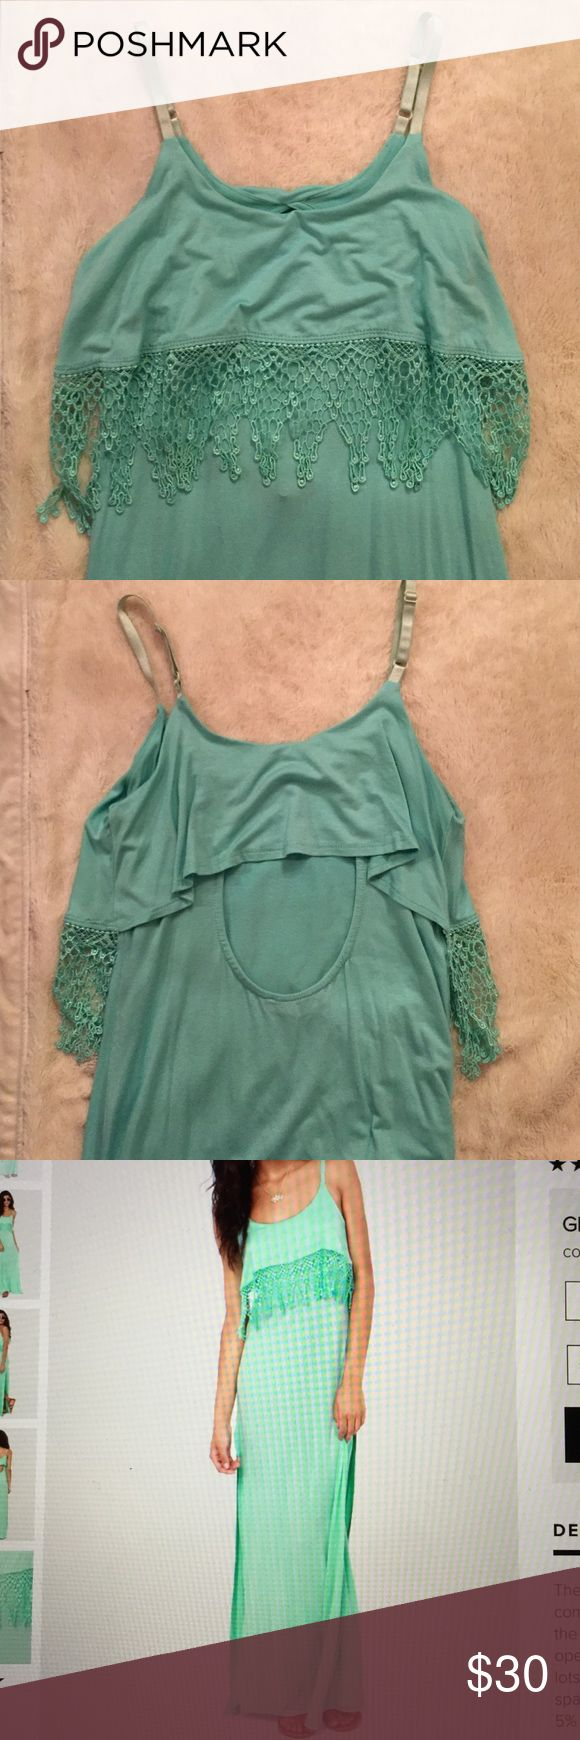 Mint Green Lulus Maxi Dress This super cute mint green/turquoise Maxi is perfect for a summer or spring occasion! Never worn but has no because it was an online order!! Lulu's Dresses Maxi